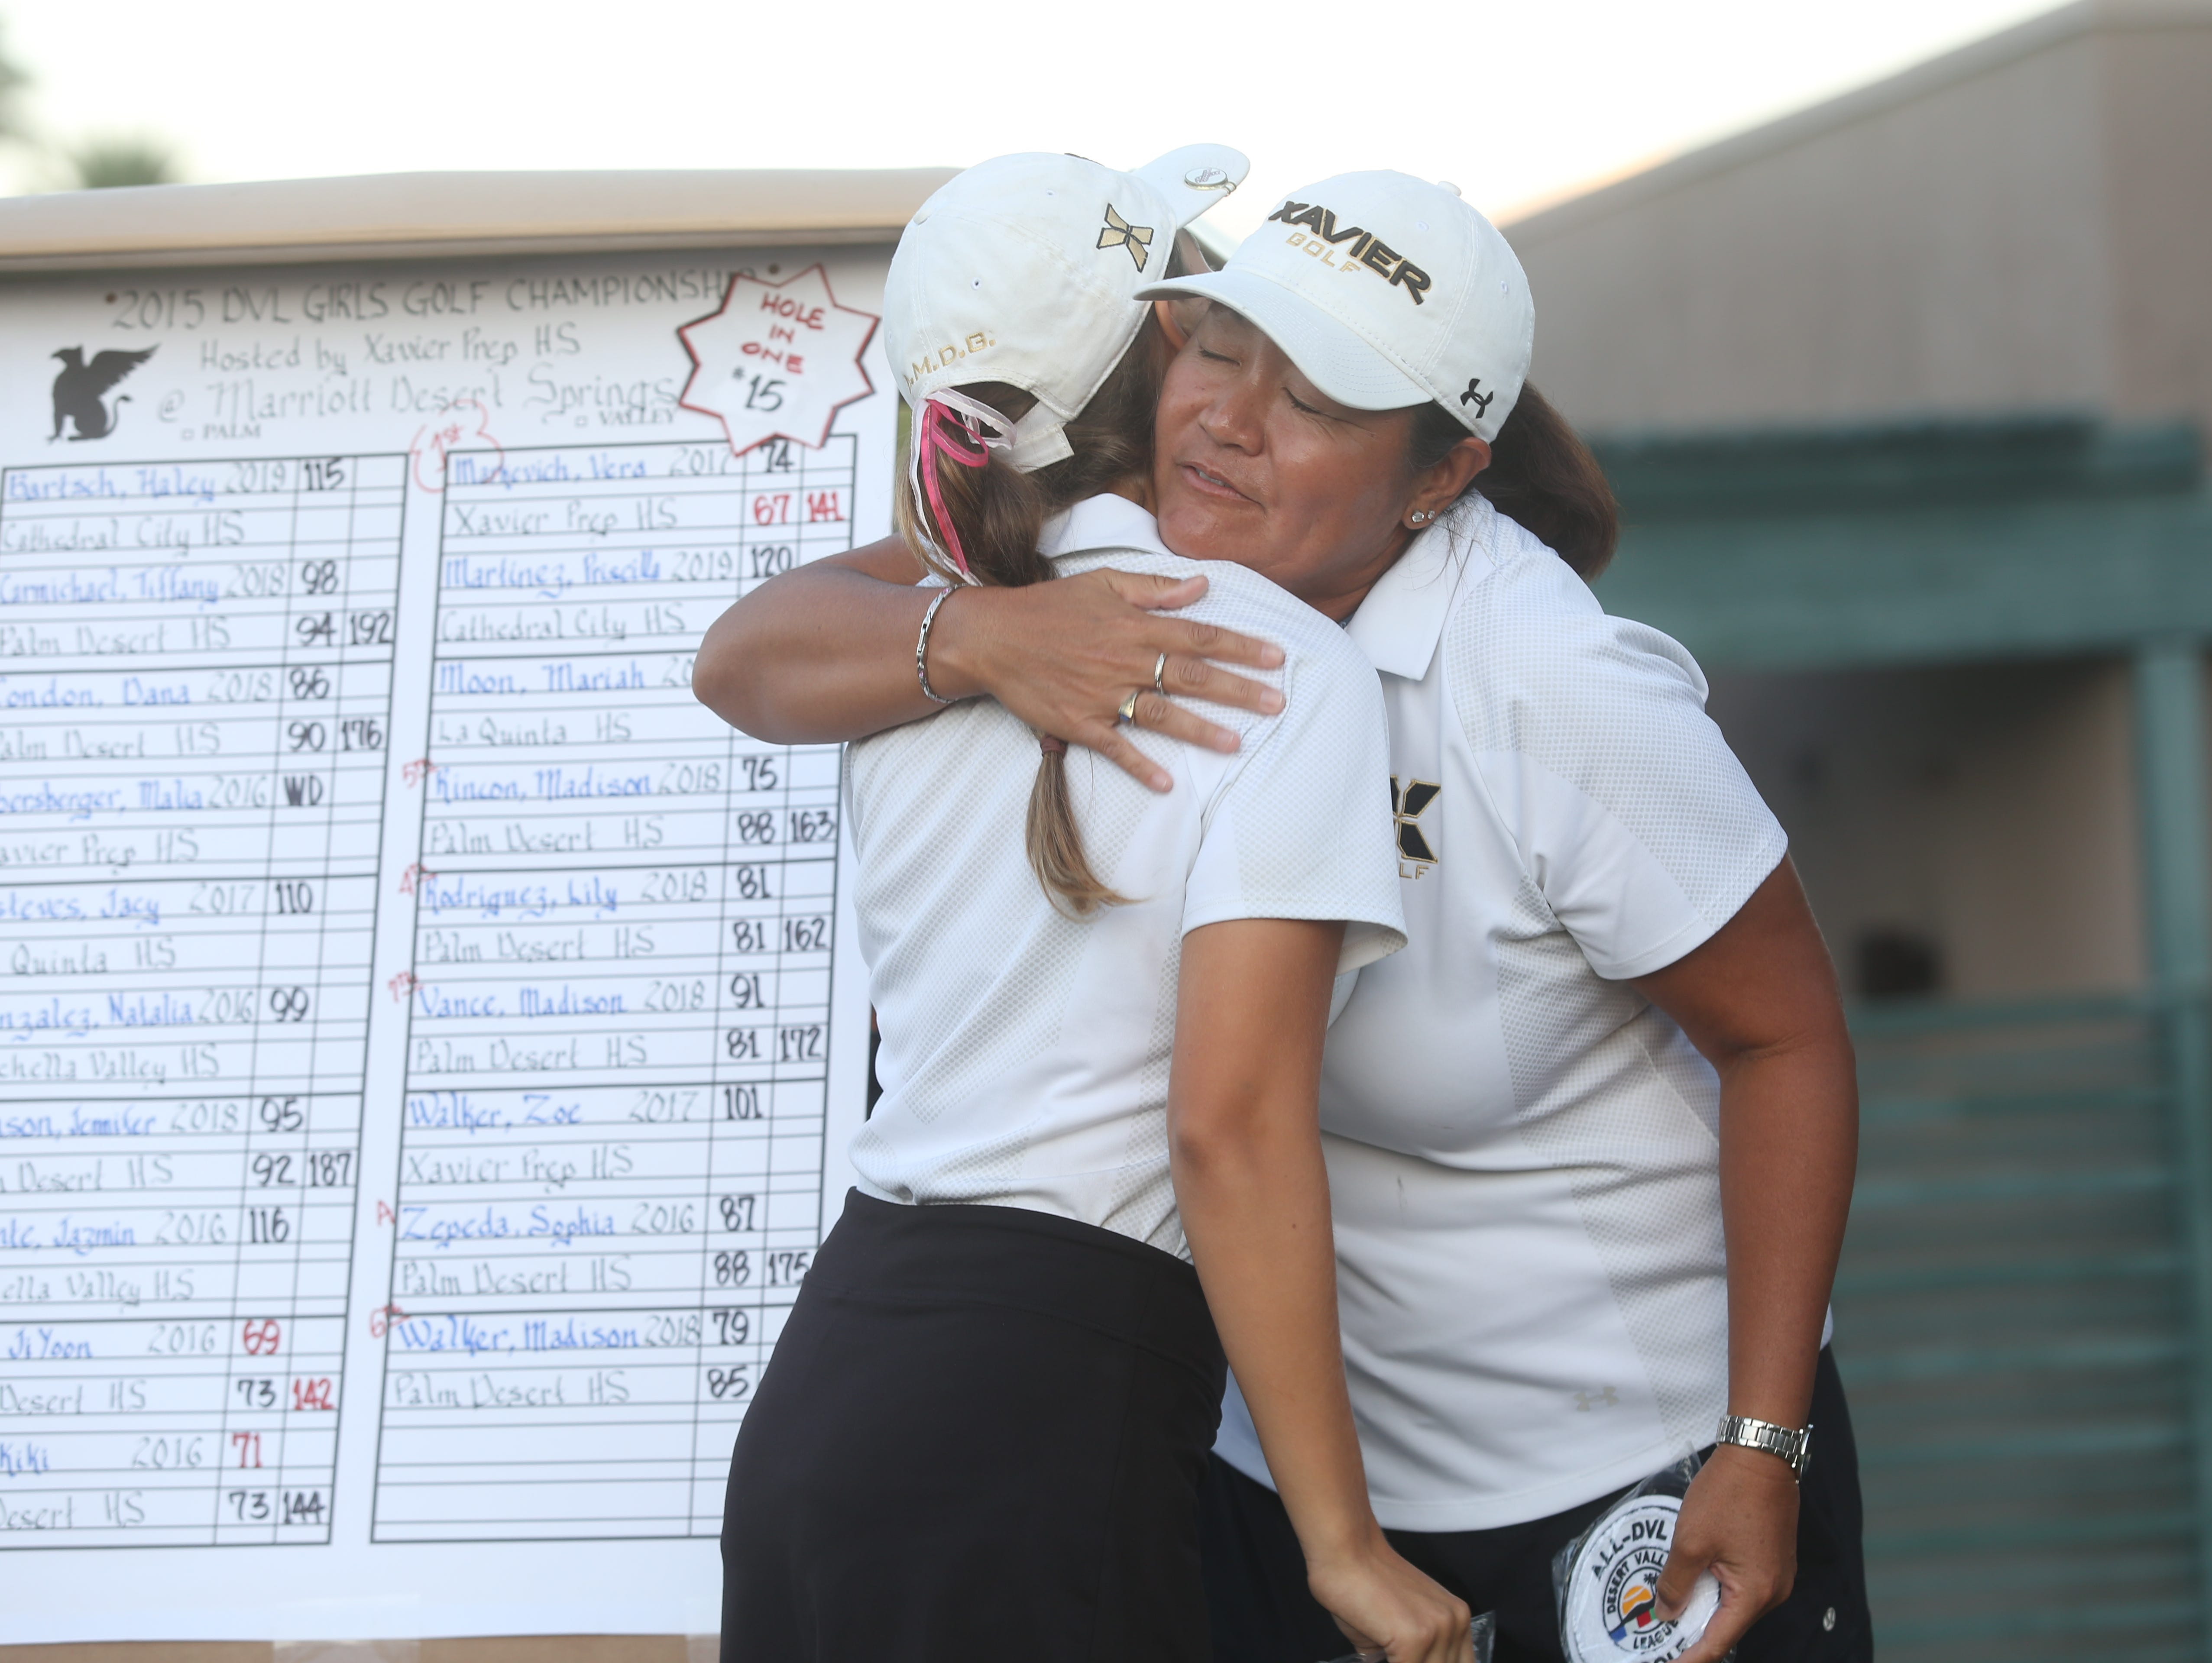 Vera Markevich, of Xavier Prep, gets a hug from her head coach Debbi Koyama after becoming the DVL champion in girls golf she won her round at Desert Springs Resort Marriot in Palm Desert on October 22, 2015.